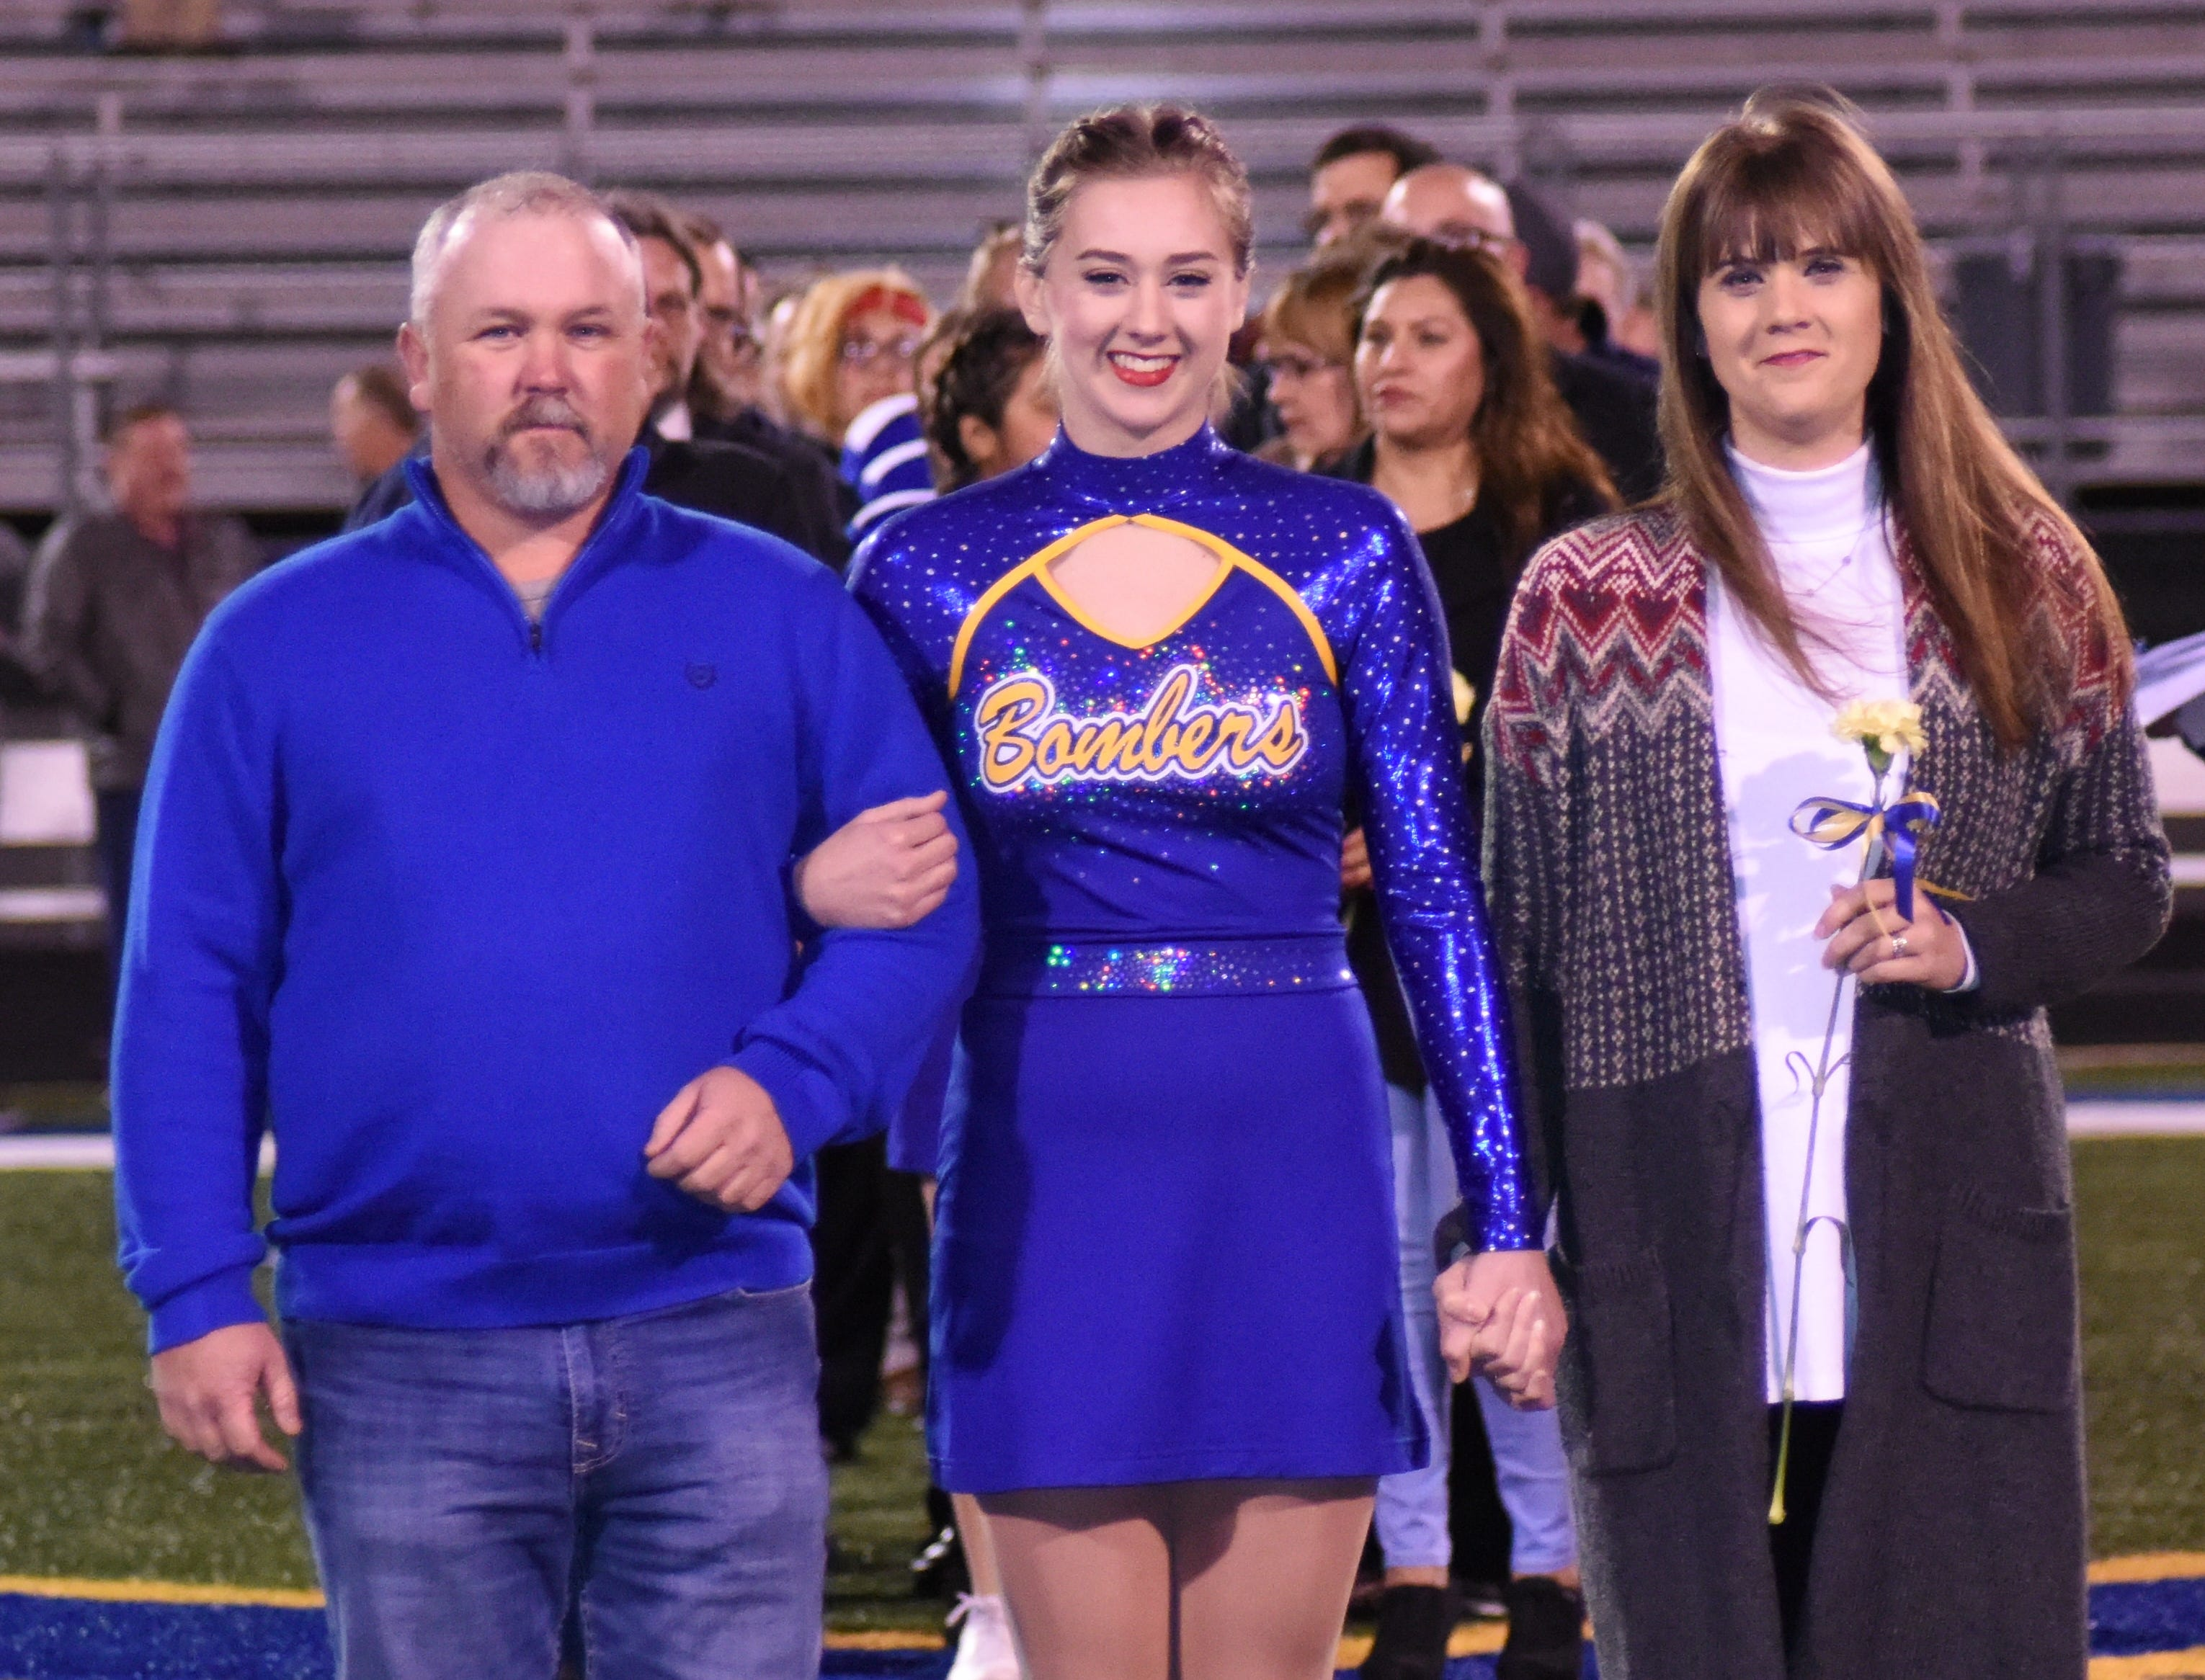 Mackenzie Drewry and her parents, David and Jennifer Drewry.